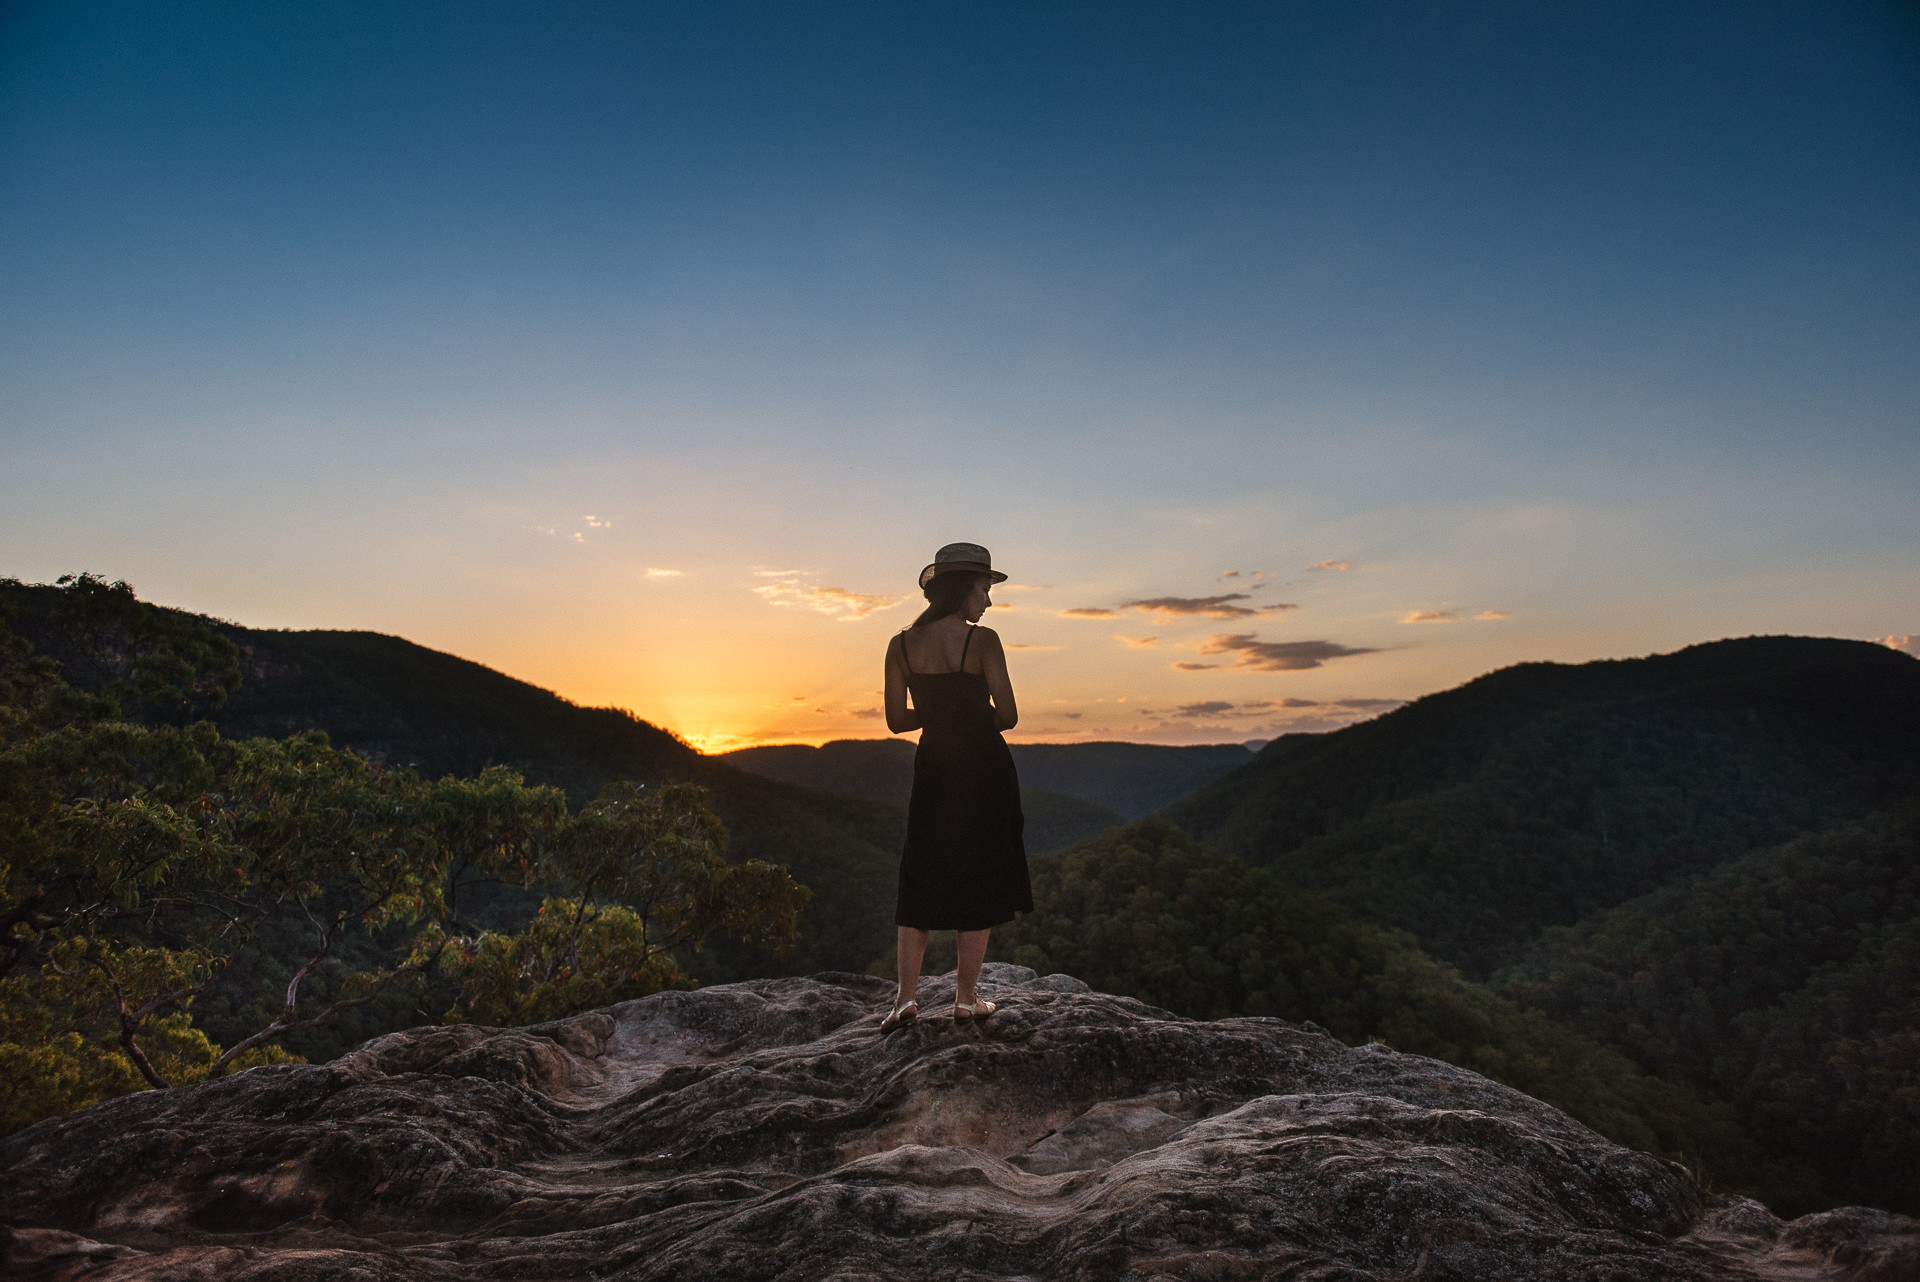 Vale of Avoca Lookout - A short drive to the end of the road from the cabin takes you to a stunning lookout with views of the Grose River and the Blue Mountains.